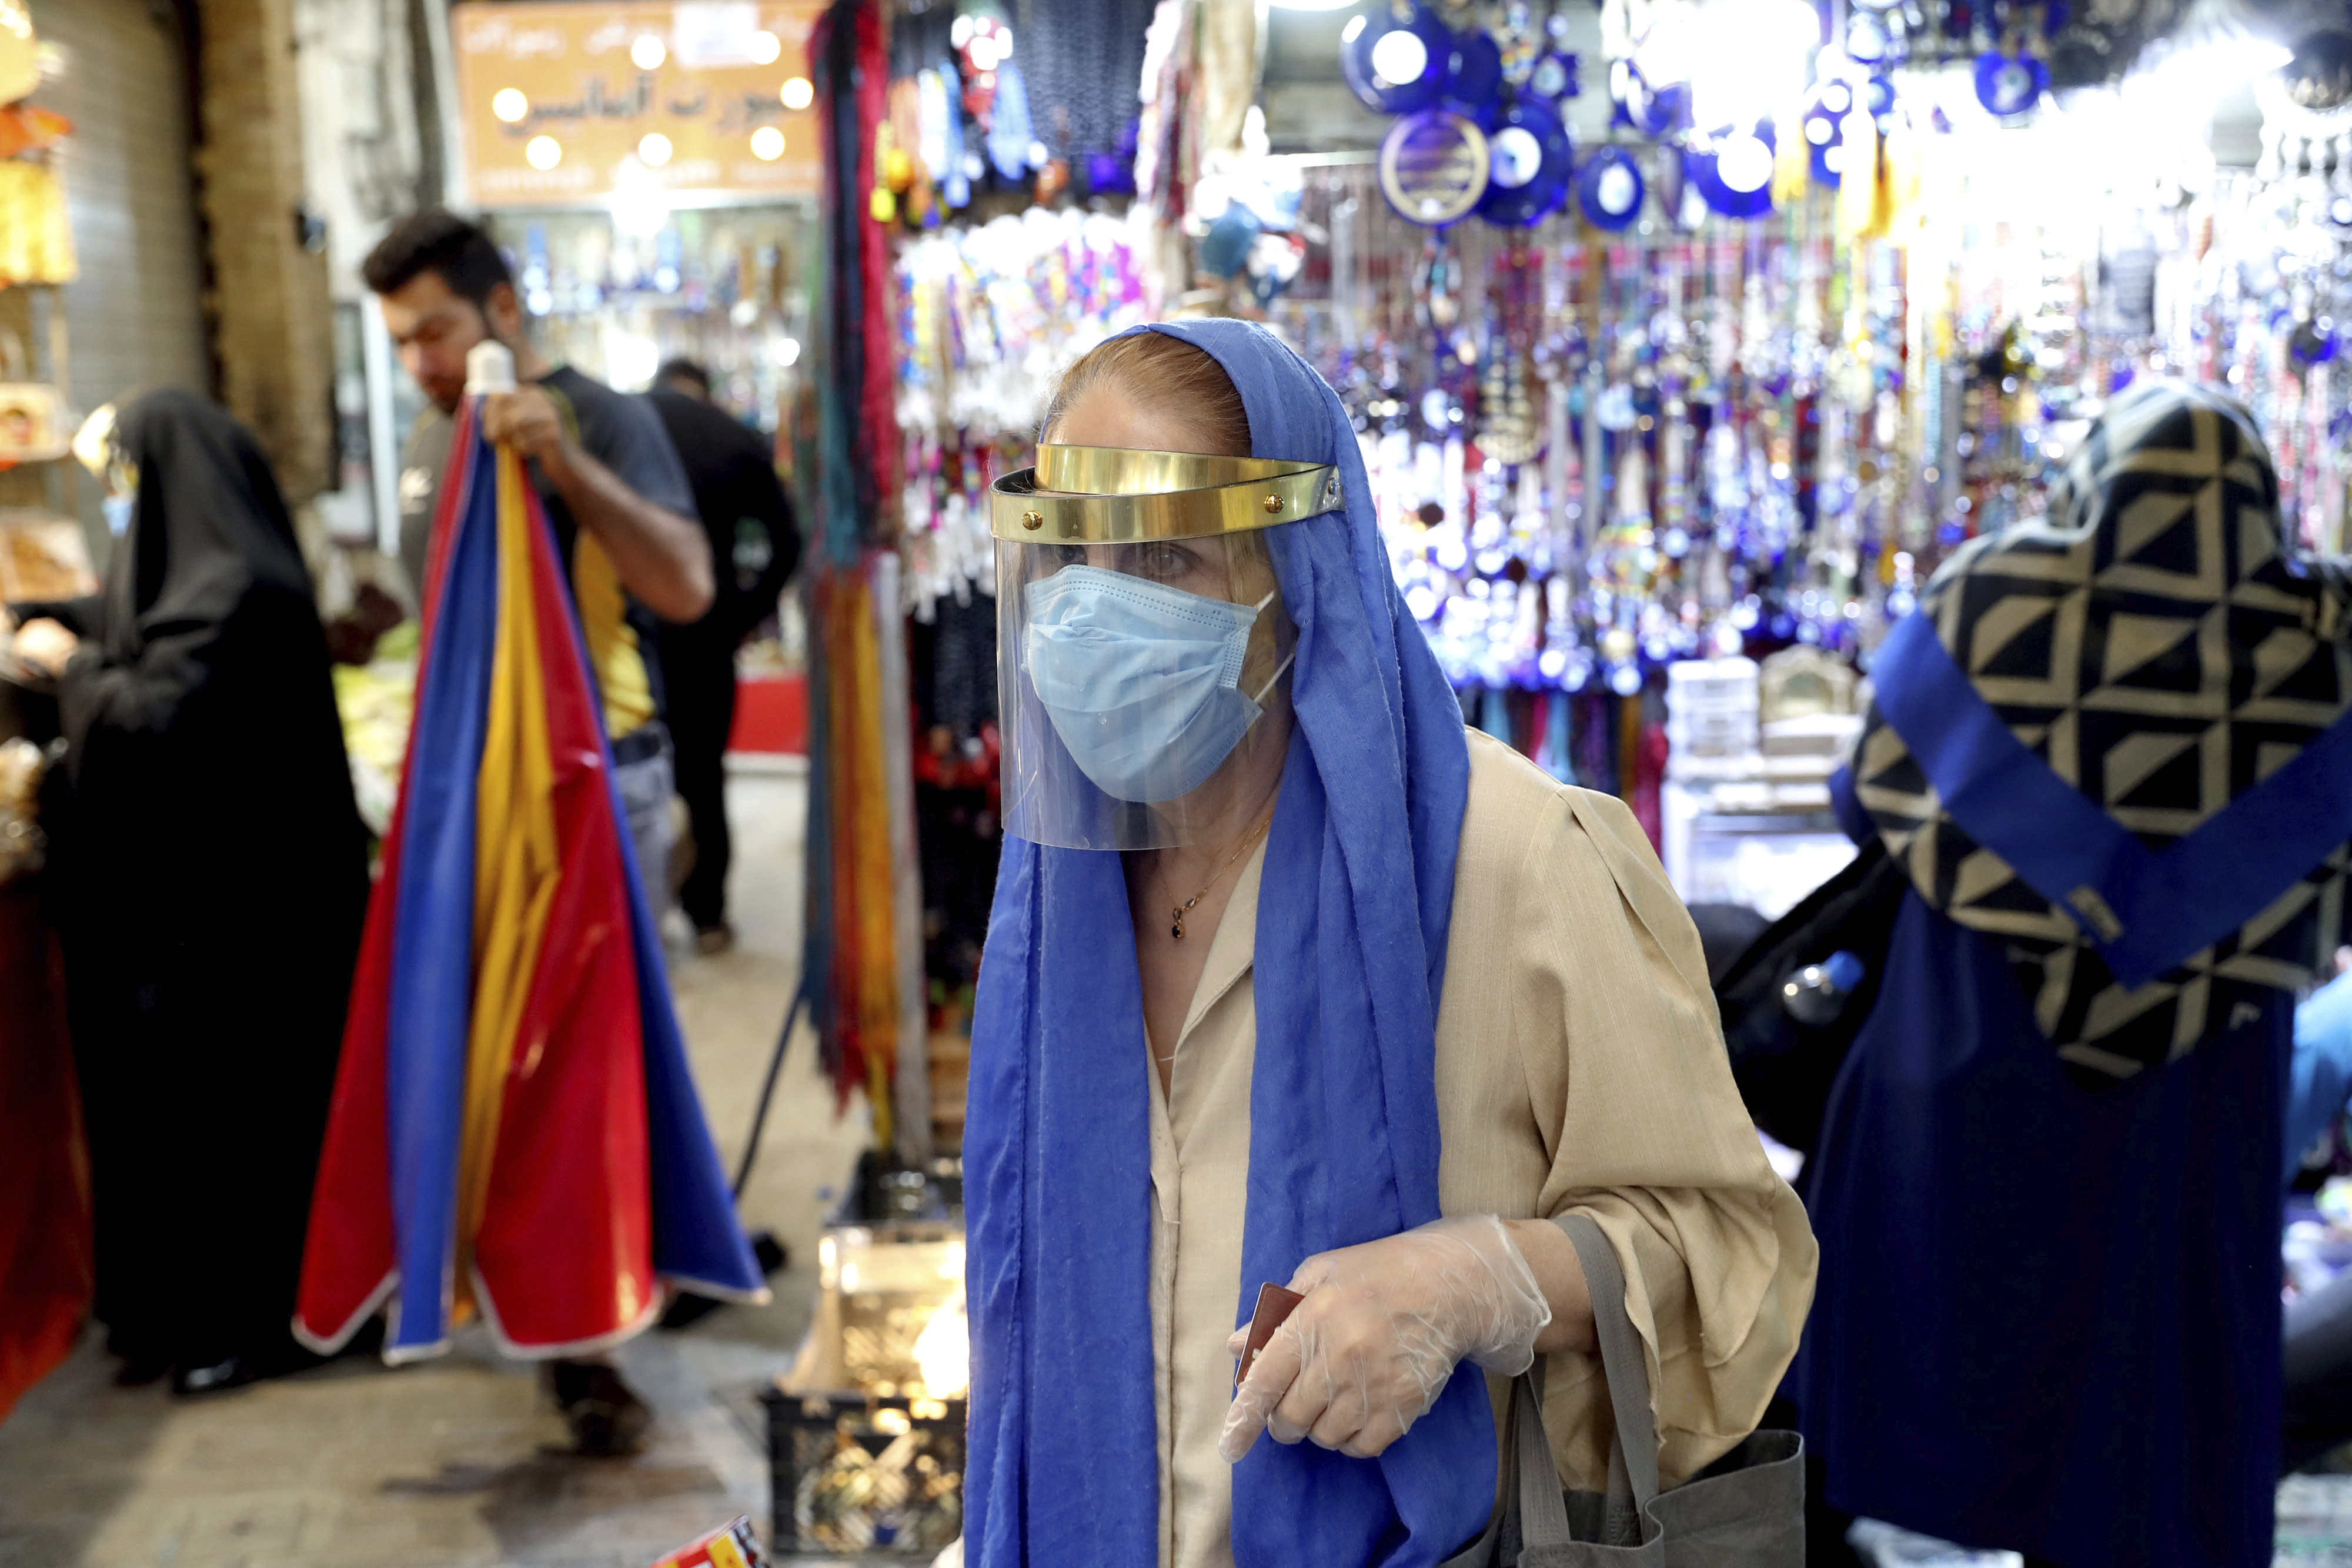 A woman wearing a protective face mask and gloves to help prevent the spread of the coronavirus walks through the Tajrish traditional bazaar in northern Tehran, Iran, Thursday, Oct. 15, 2020. Eight months after the pandemic first stormed Iran, pummeling its already weakened economy and sickening officials at the highest levels of its government, authorities appear just as helpless to prevent its spread. (AP Photo/Ebrahim Noroozi)